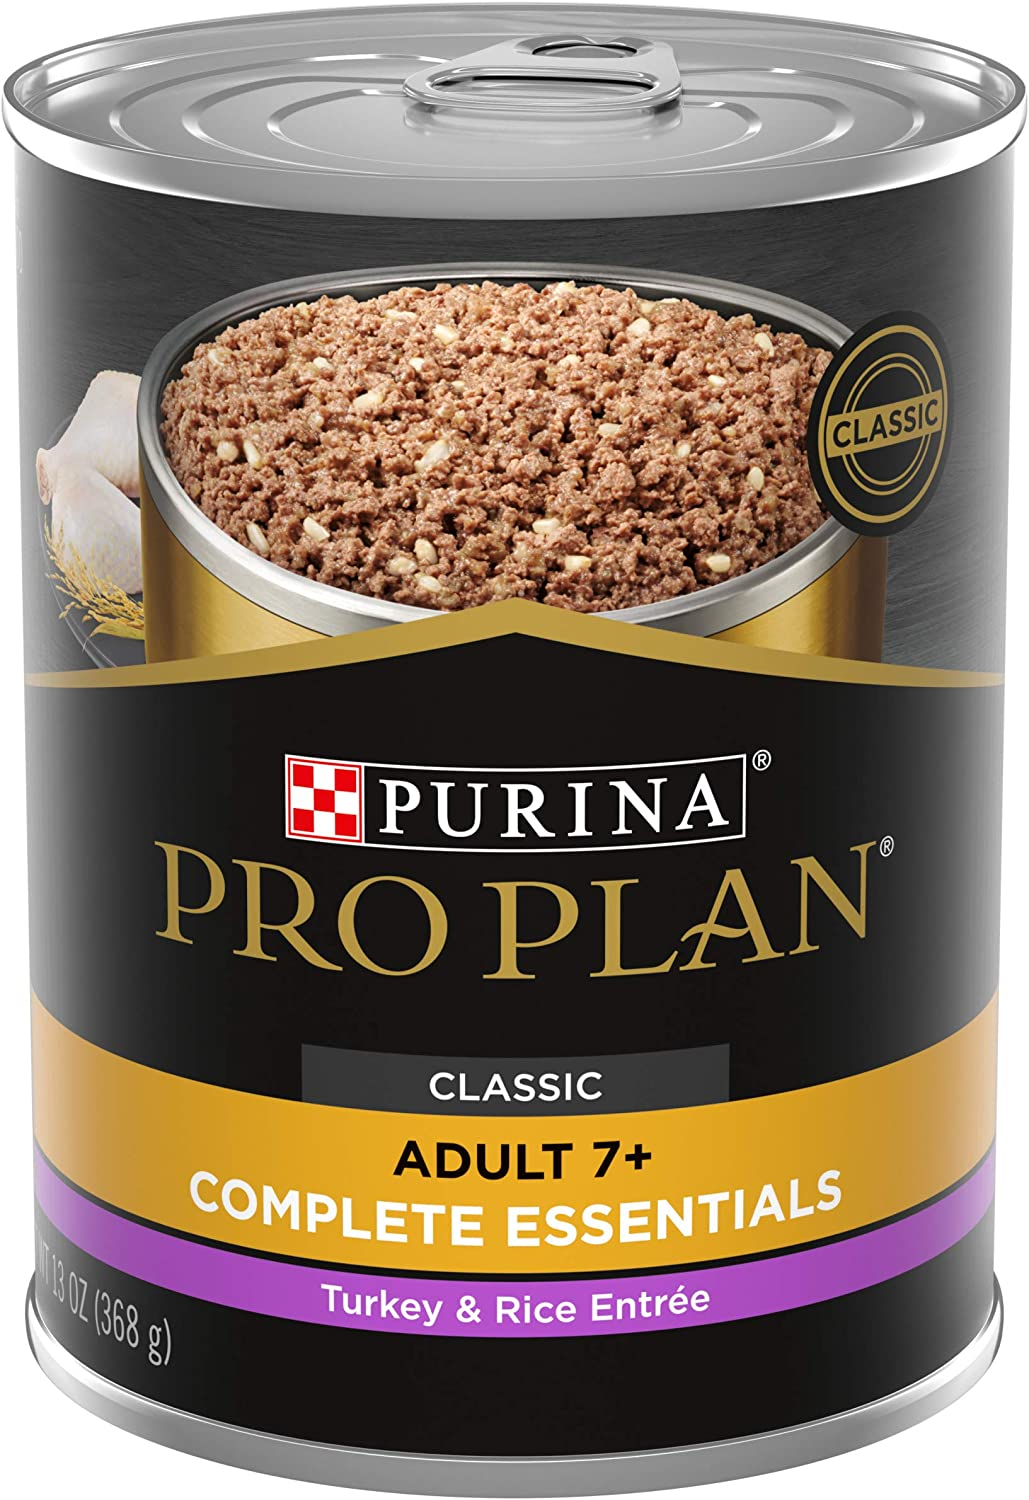 Purina Pro Plan High Protein Wet Dog Food, Senior Adult 7+ Turkey & Rice Formula - (12) 13 oz. Cans